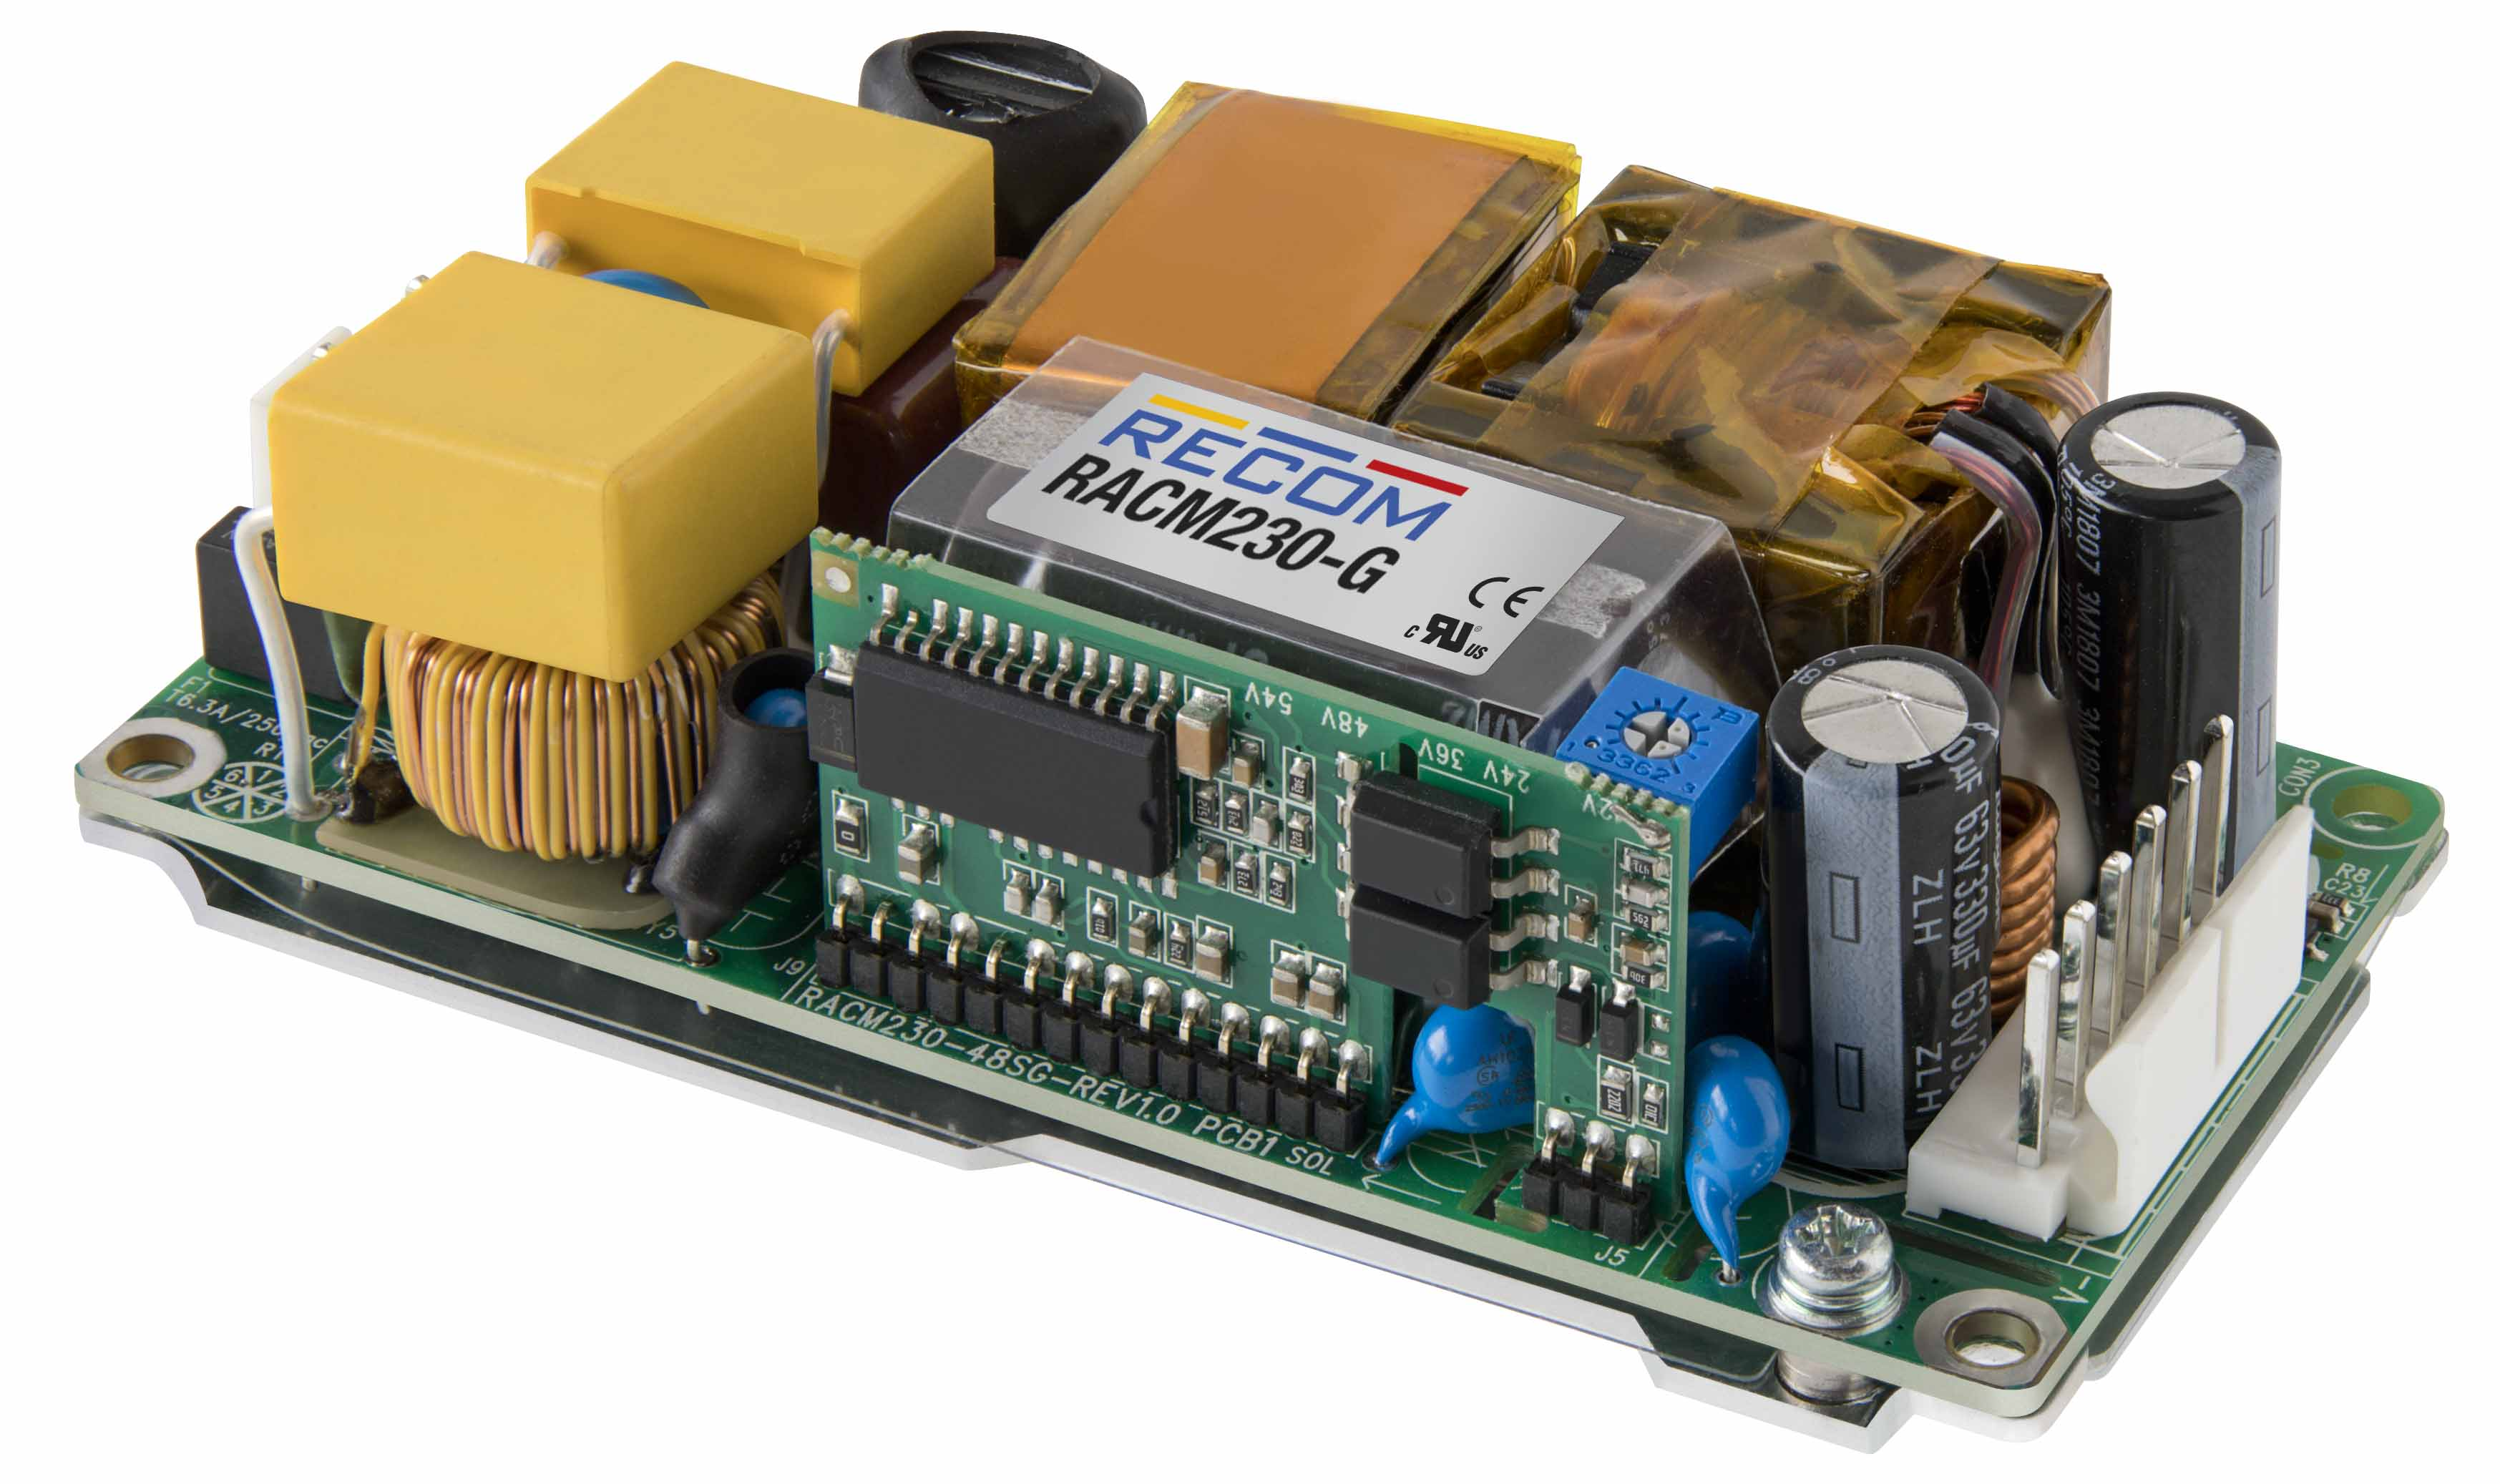 new-compact-4''x2''-racm230-g-series-power-supplies-from-recom